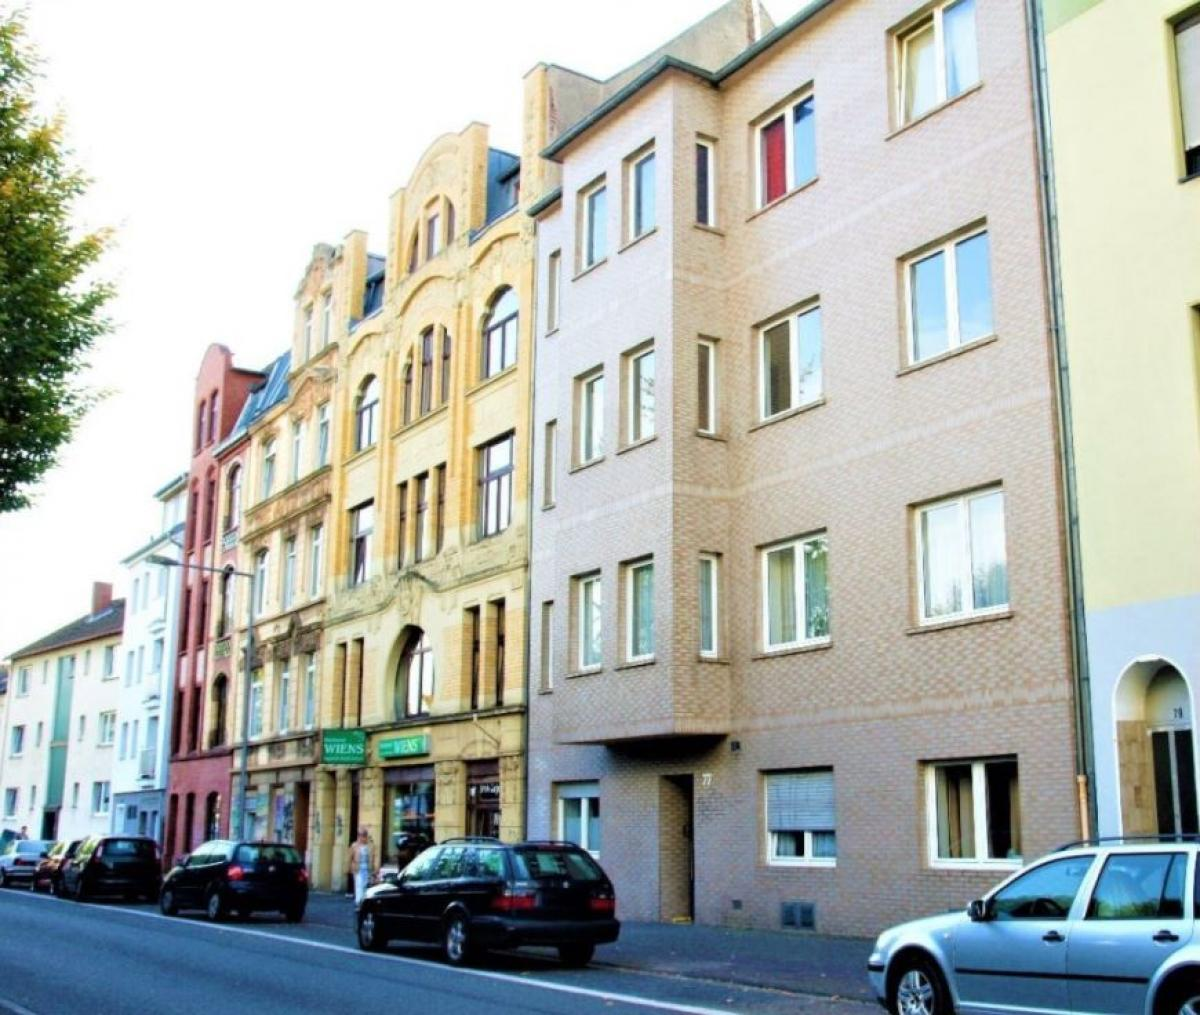 Picture of Apartment Building For Sale in Dusseldorf, North Rhine - Westphalia, Germany